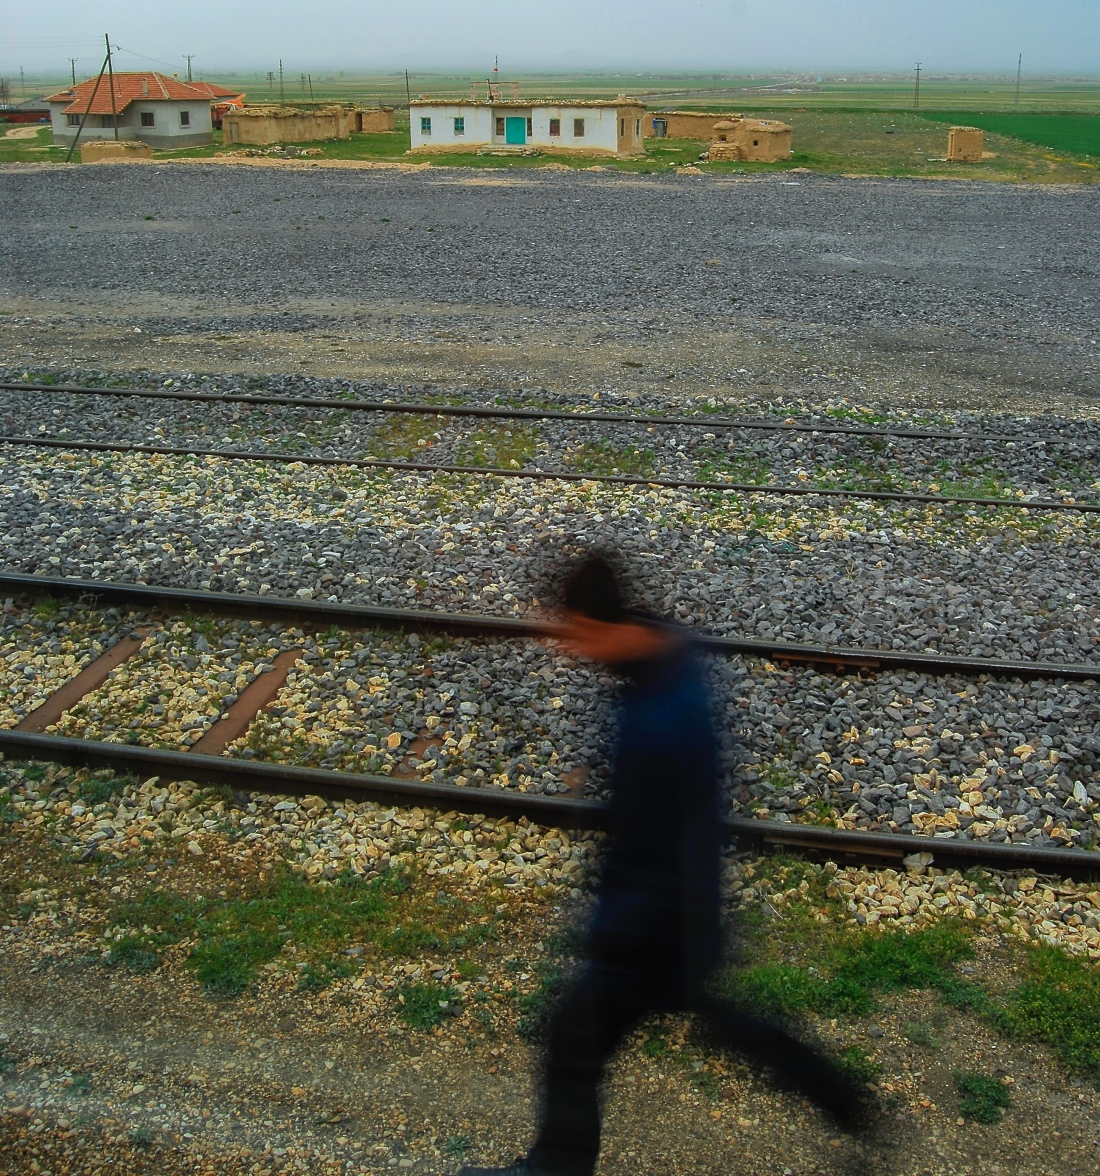 blurred-figure-anatolia